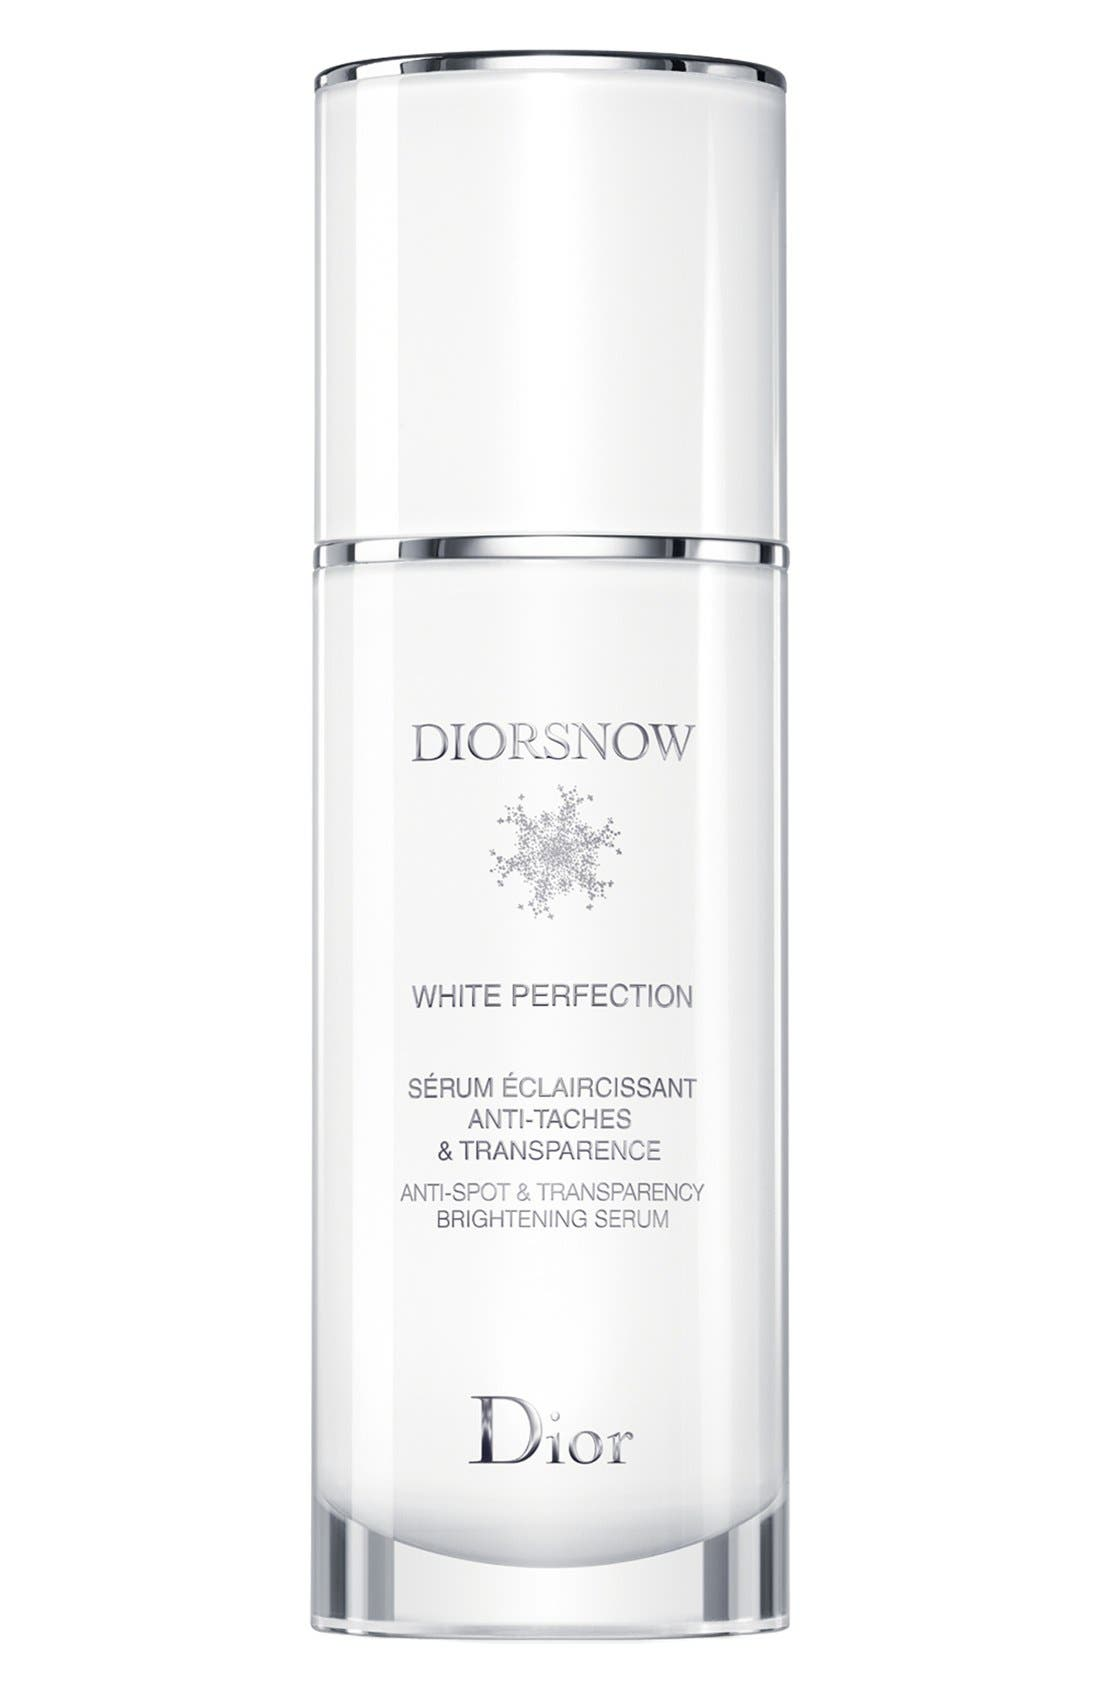 Dior 'Diorsnow White Perfection' Anti-Spot & Transparency Brightening Serum